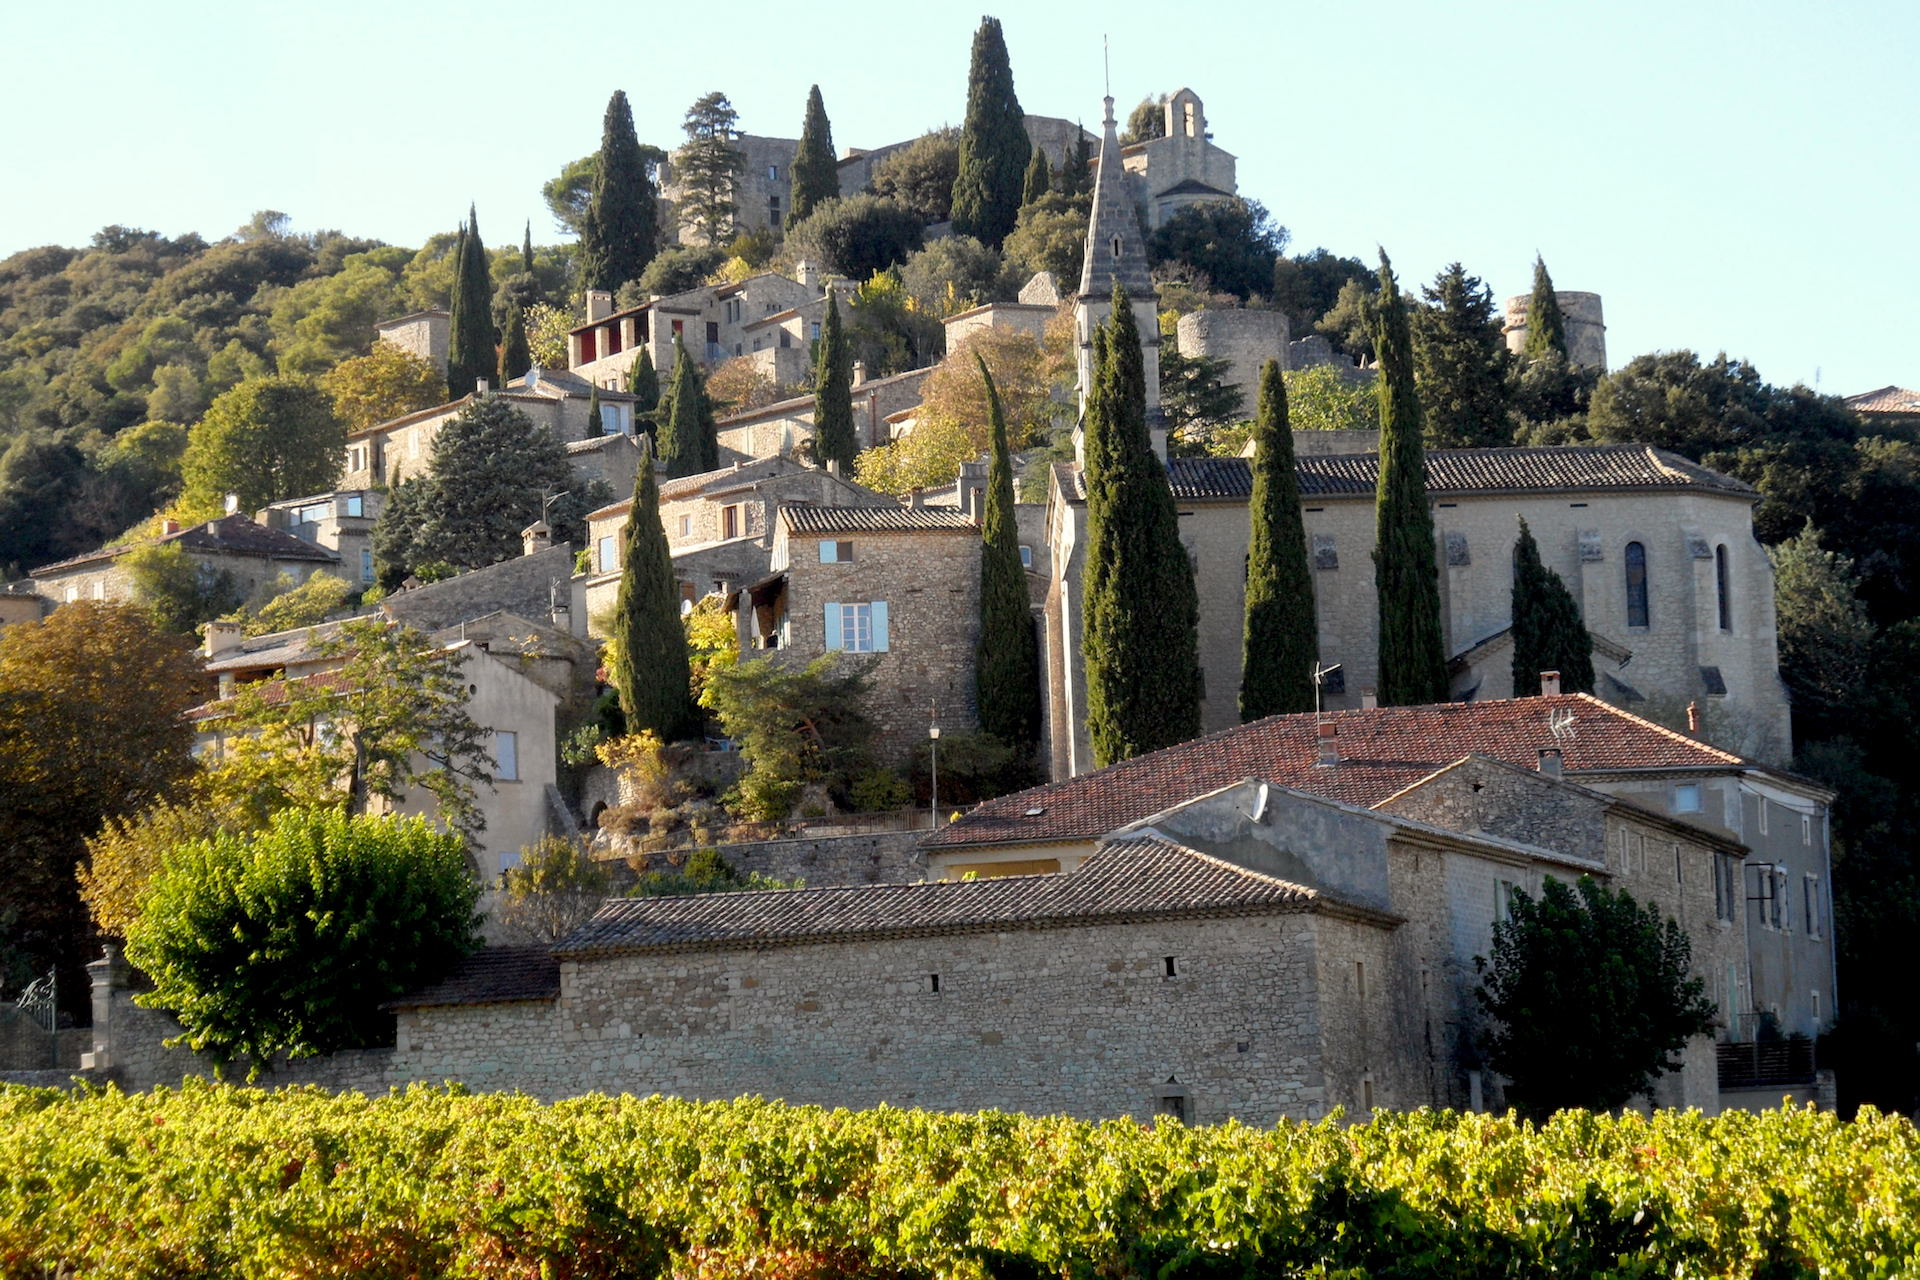 La Roque sur Cèze, at the foot of the Castle, lovely village house with panoramic views